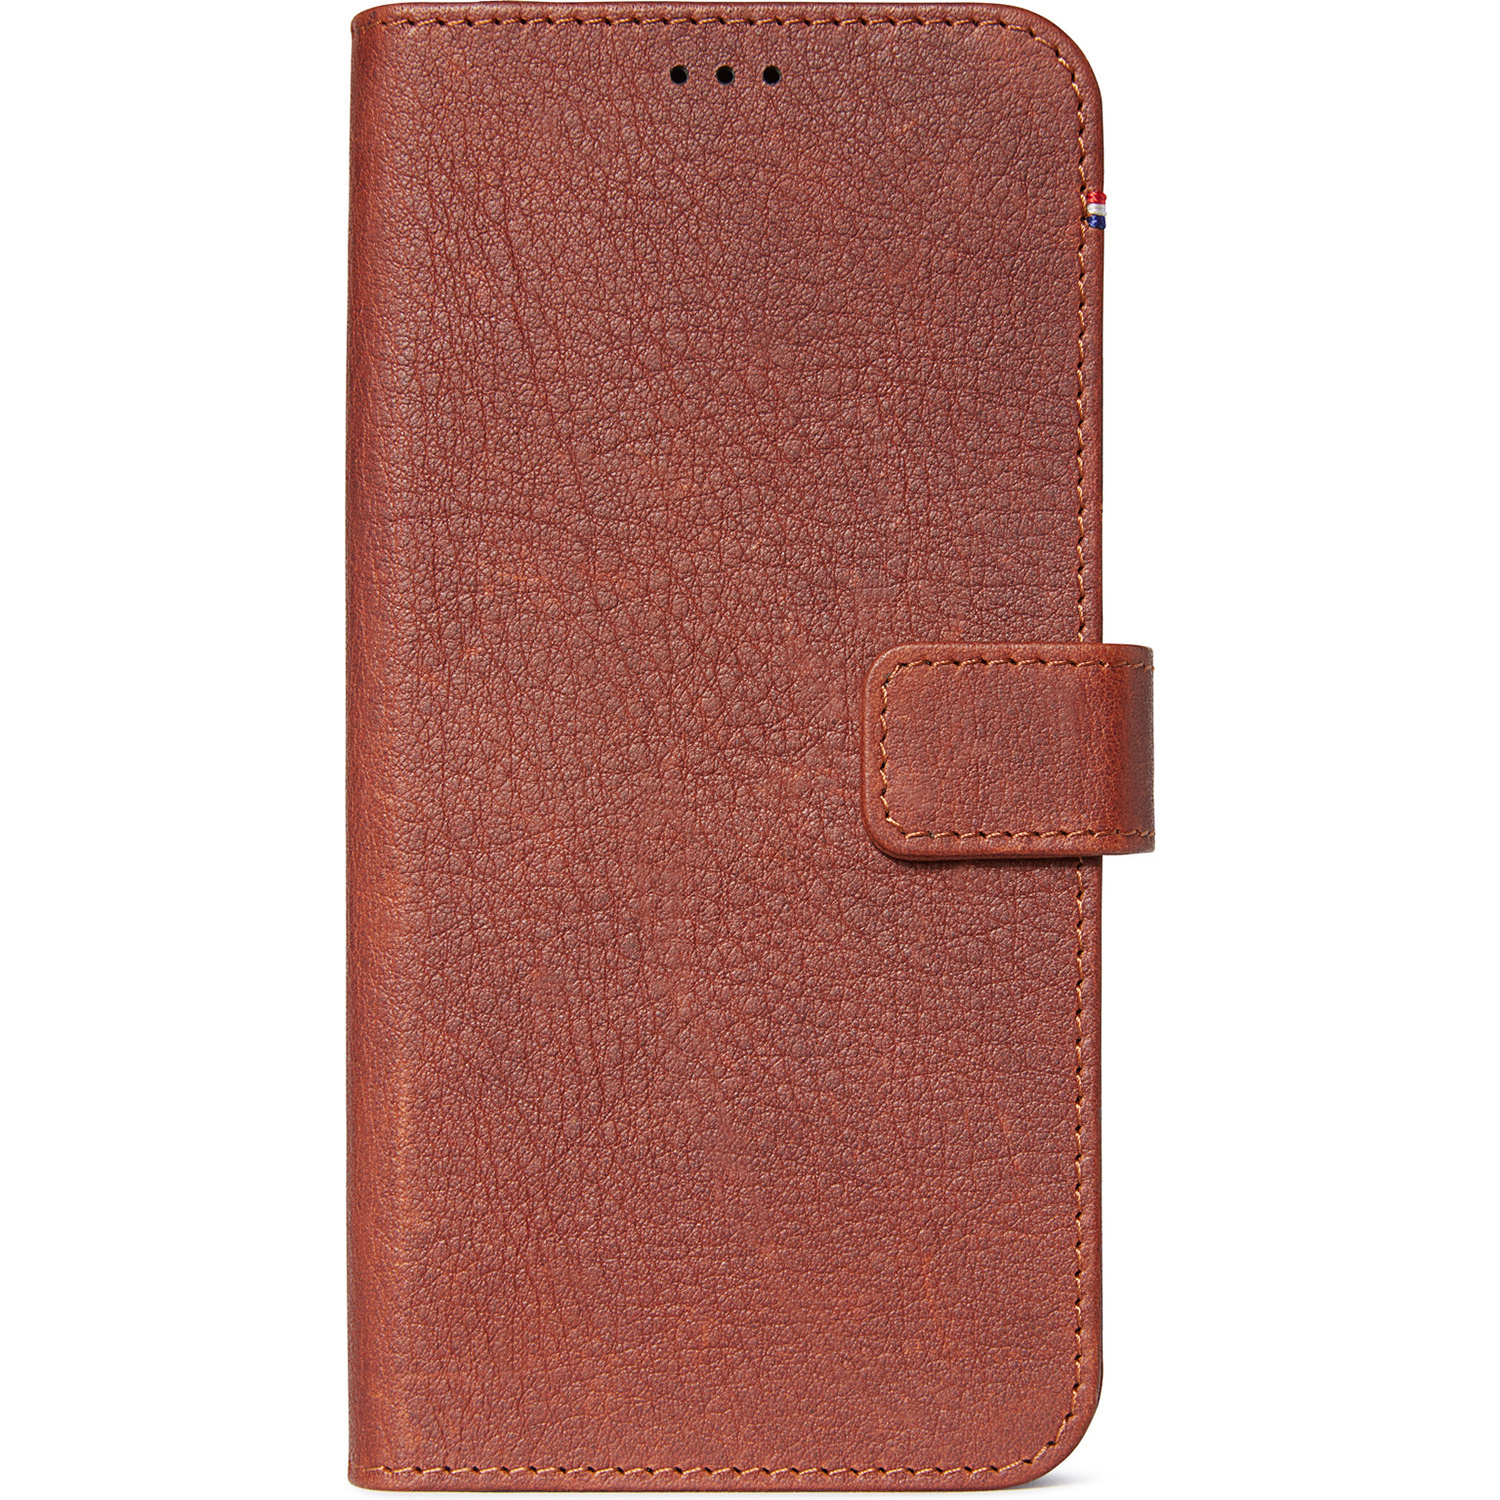 Decoded 2 in 1 Leather Booktype Braun iPhone 11 Pro Max